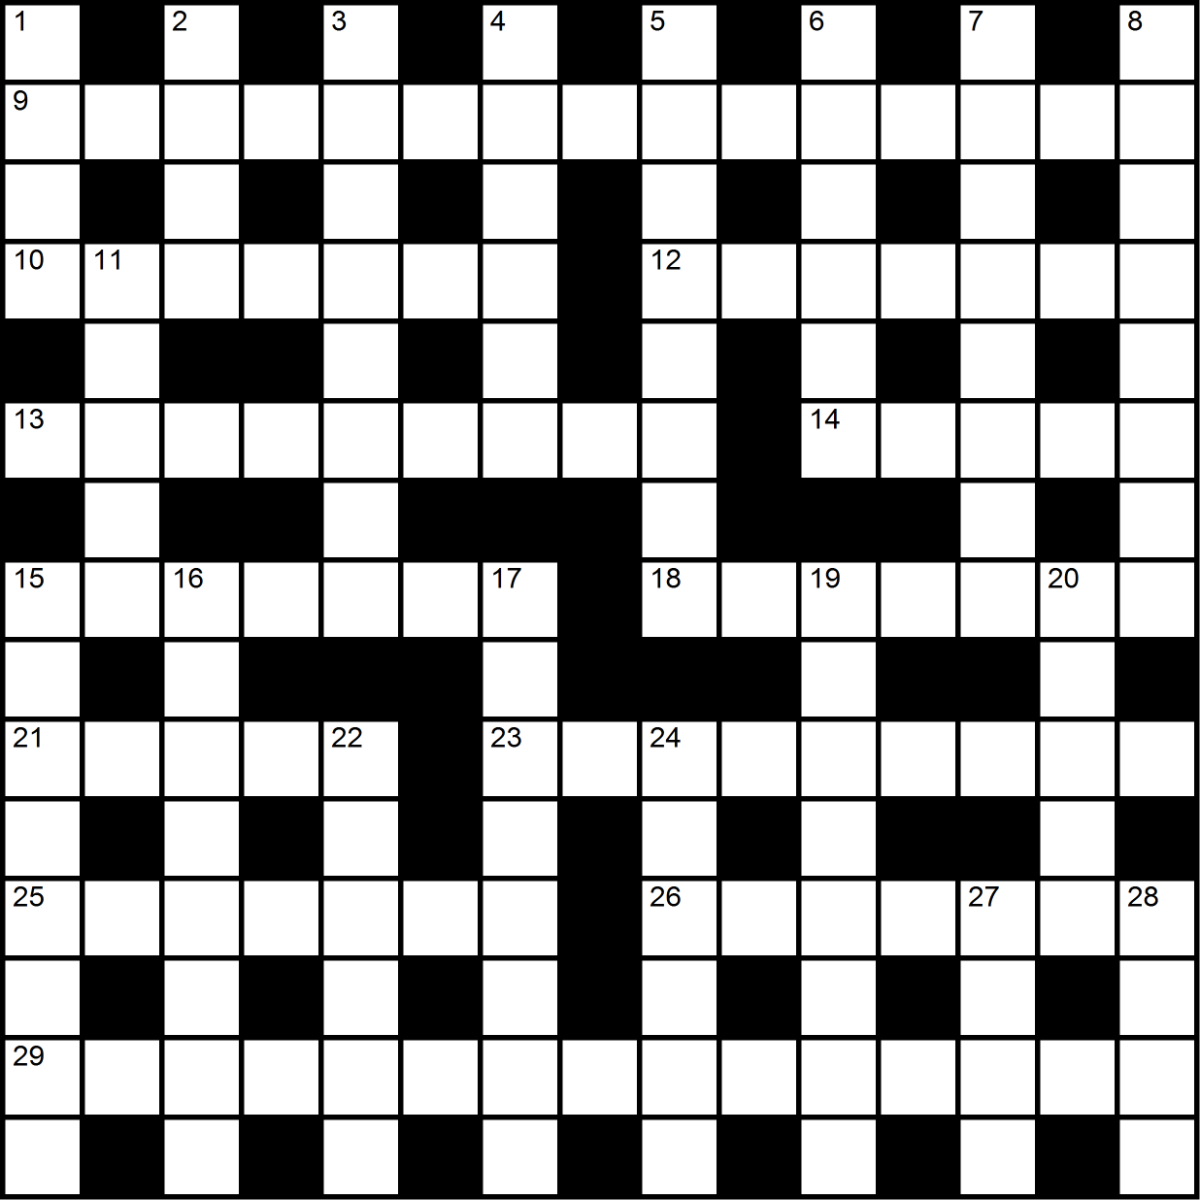 crossword1-blank